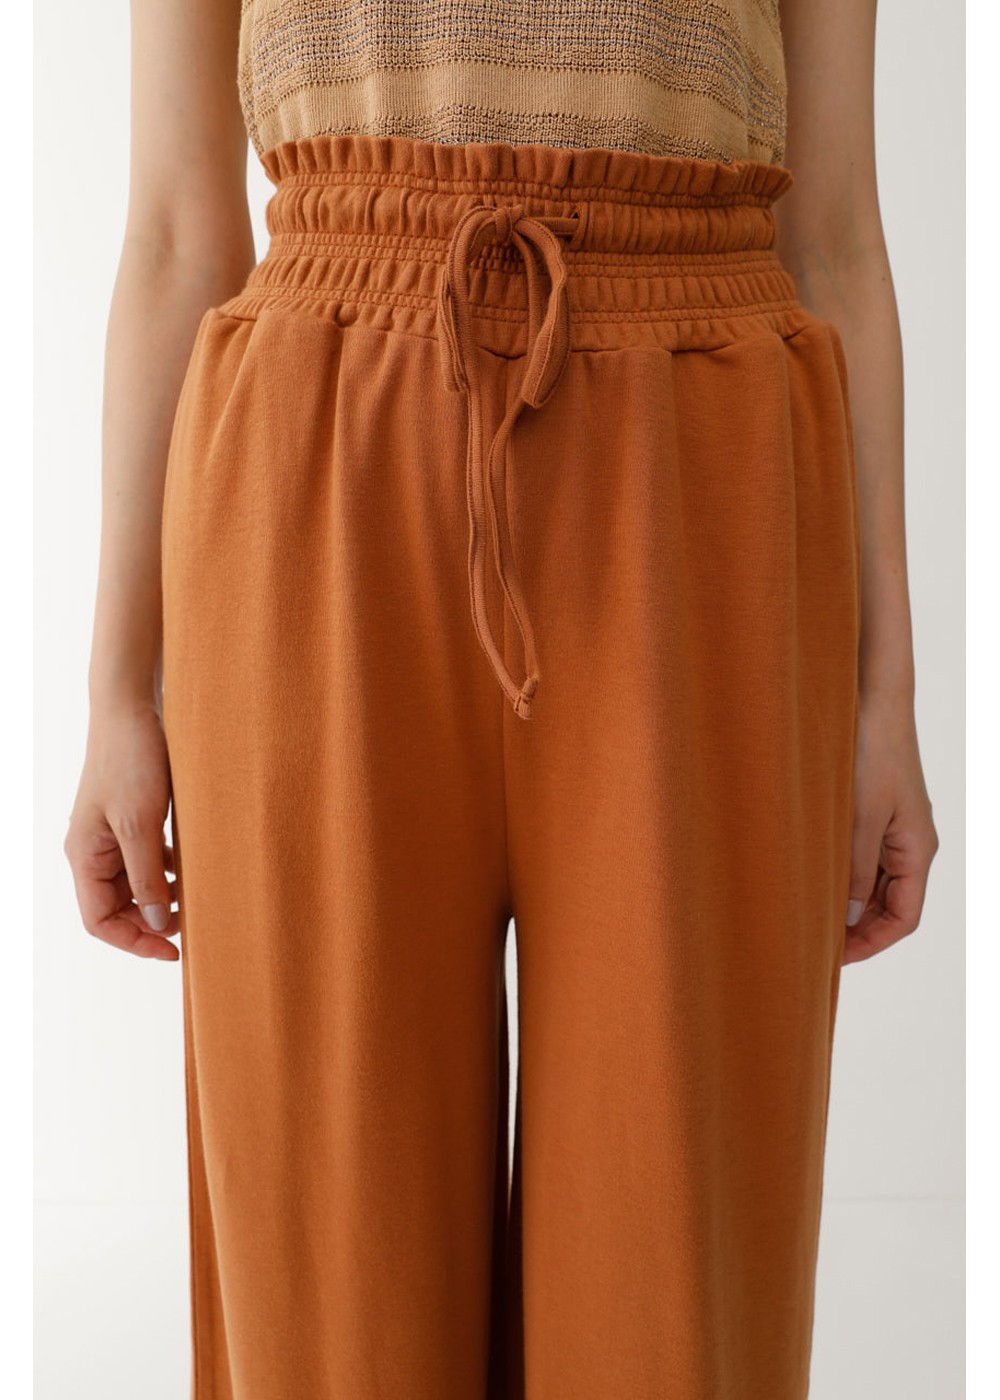 【最大60%OFF】WAIST GATHER RELAX PANTS|BRN|ワイド|MOUSSY